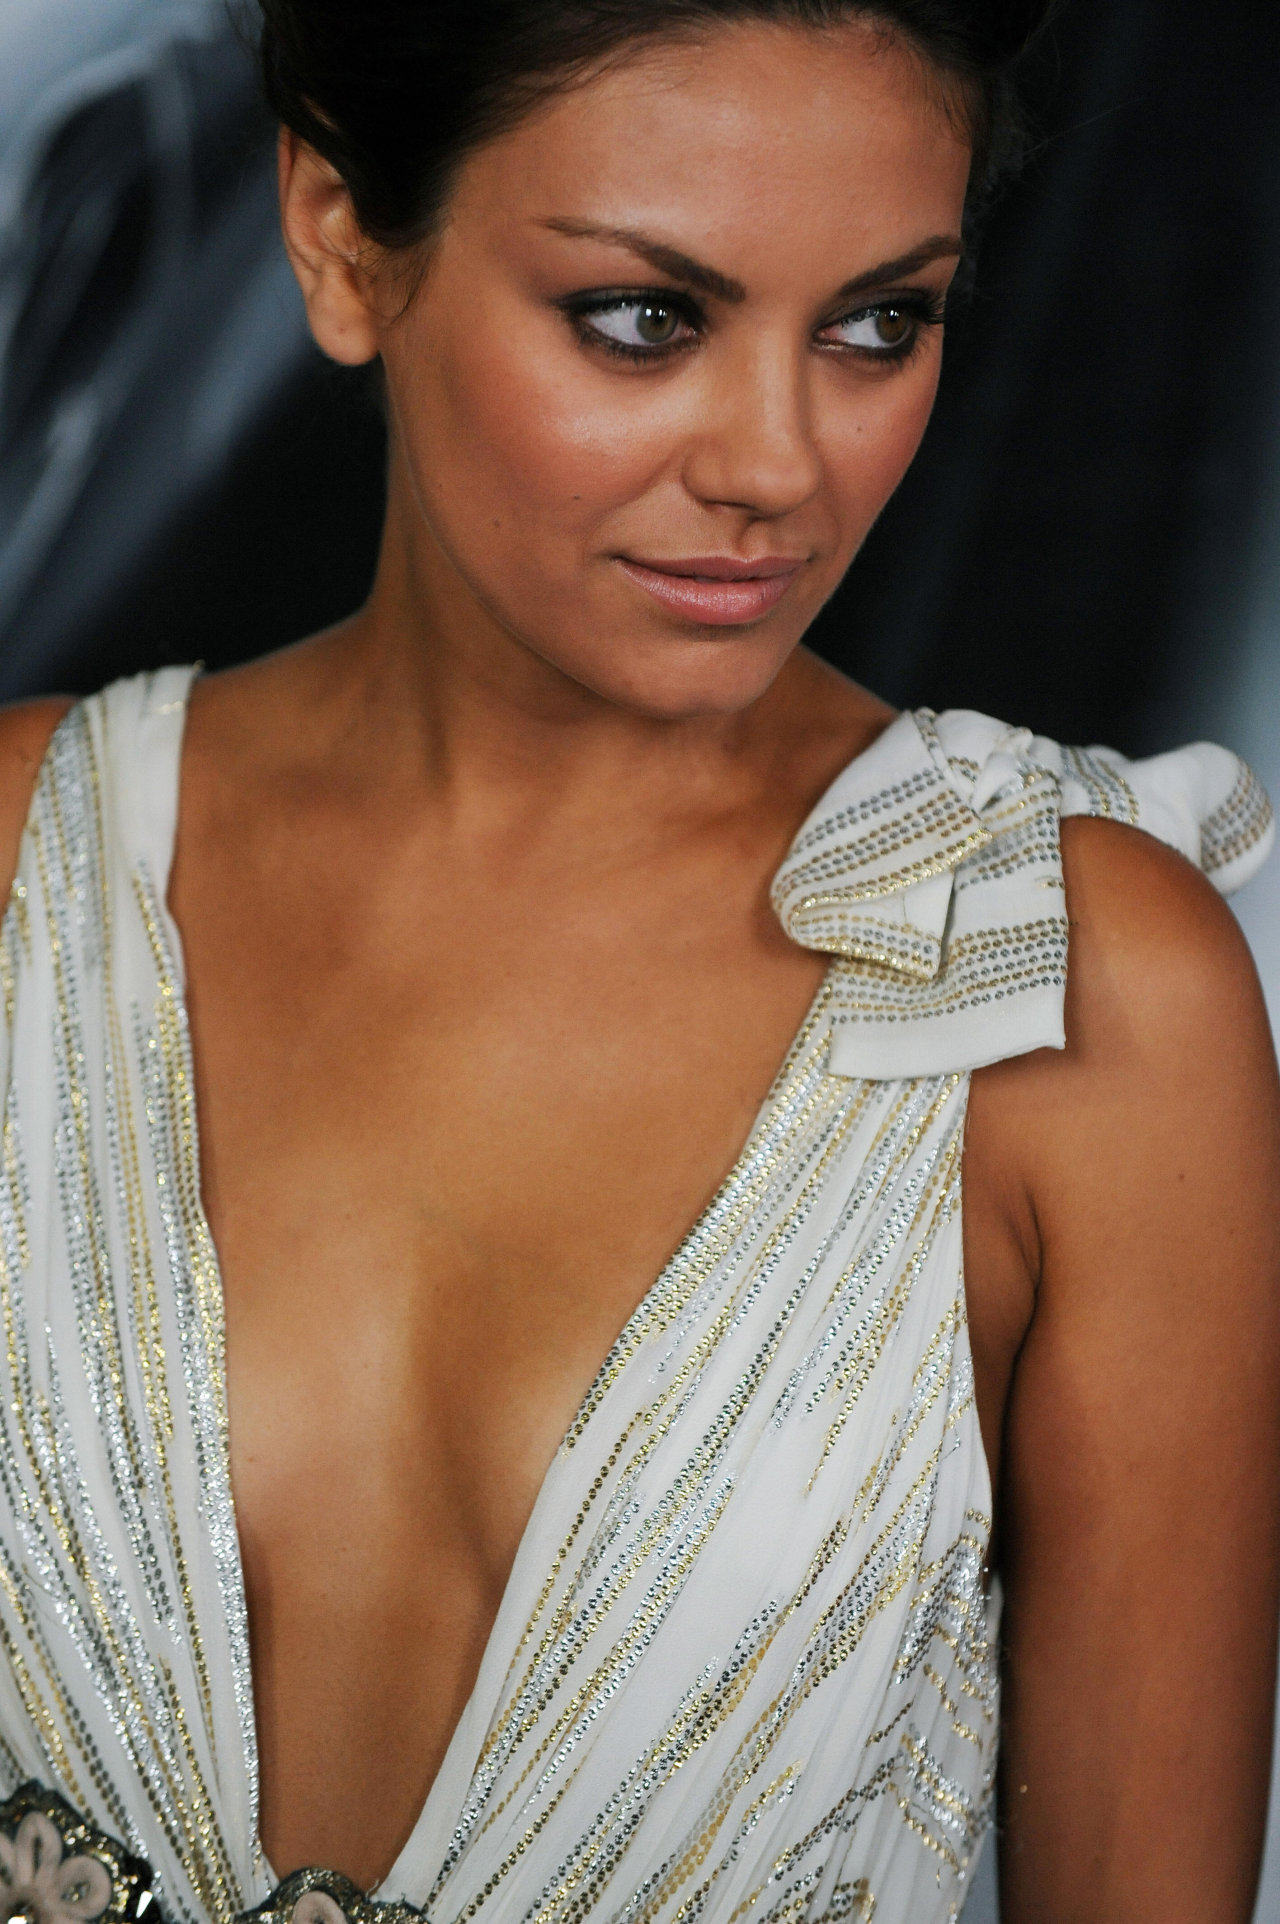 Nude pictures of mila kunis photos 31